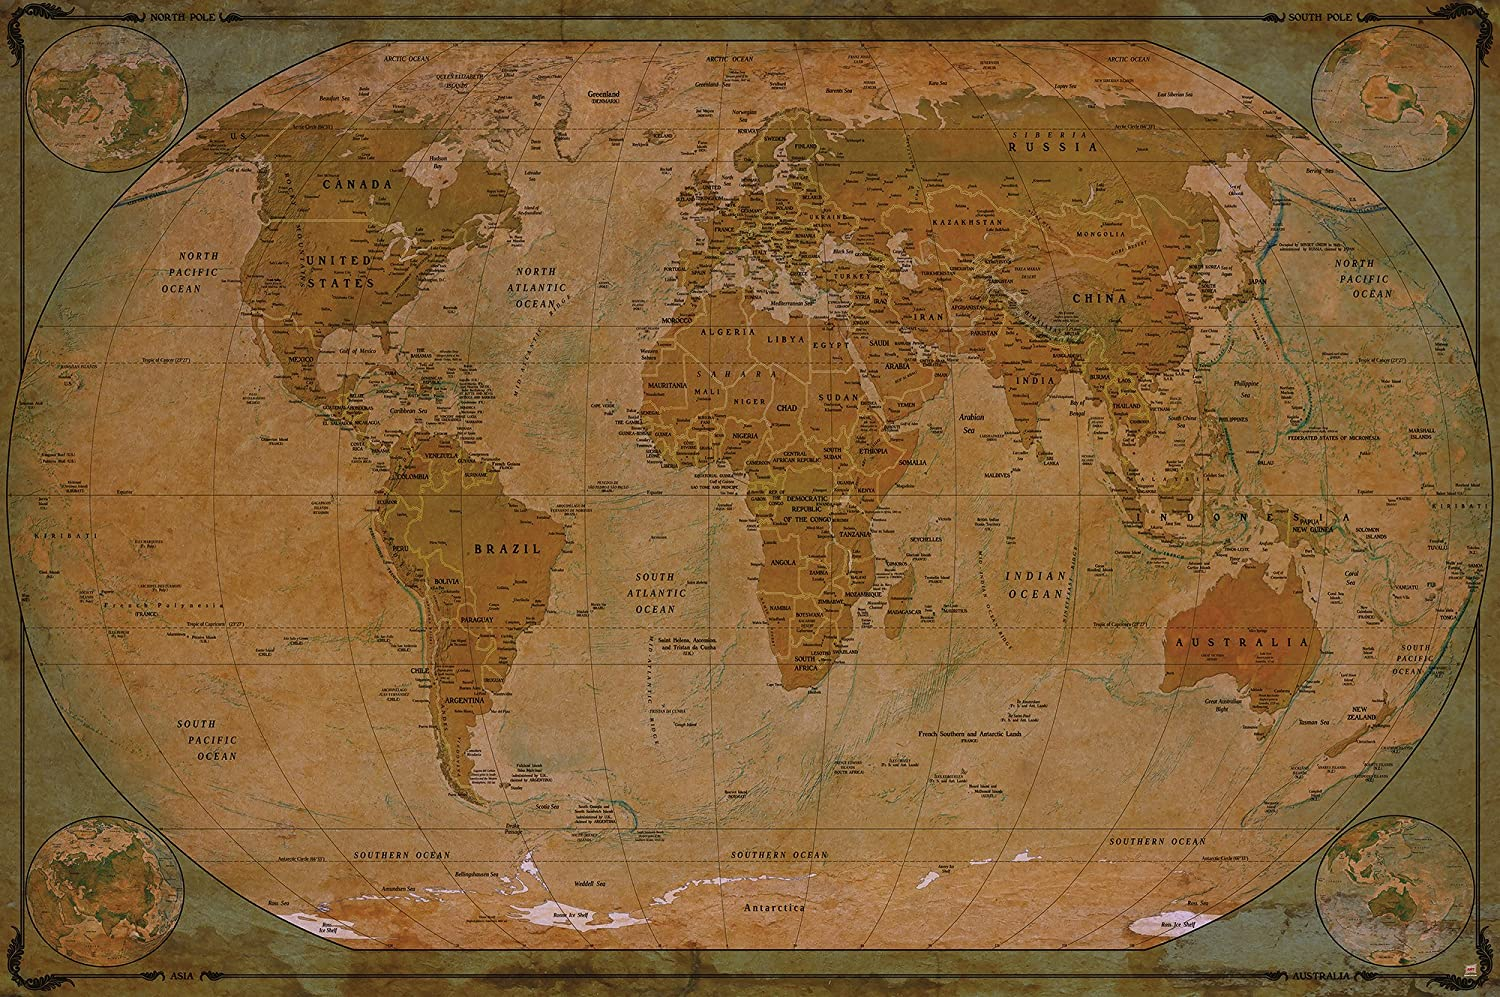 Amazon historical world map poster xxl wall picture amazon historical world map poster xxl wall picture decoration globe antique vintage world map used atlas map old school wallposter photoposter gumiabroncs Images